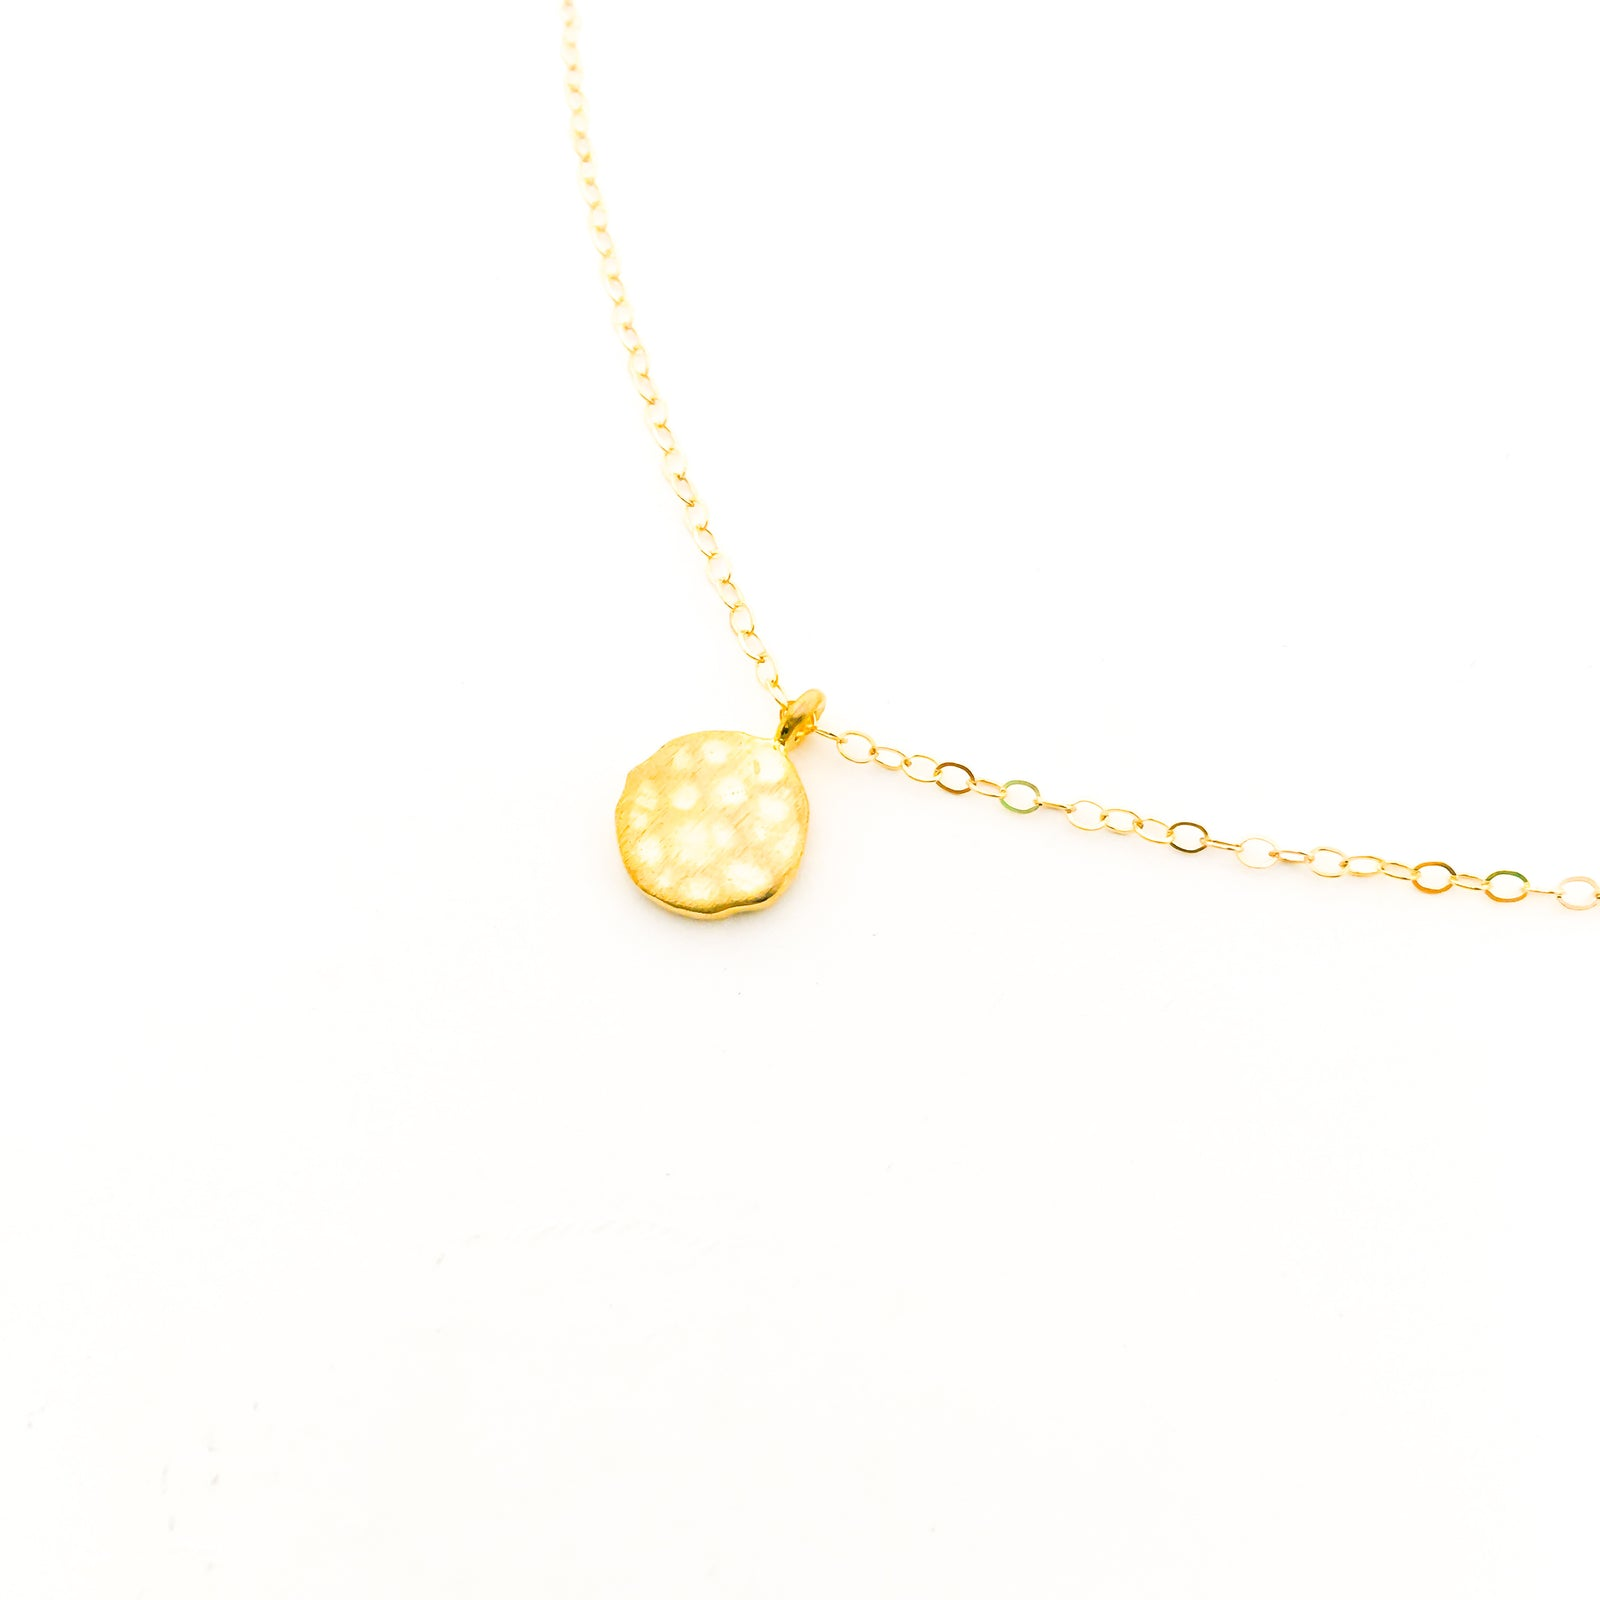 TEXTURED VERMEIL CHARM NECKLACE | 14K GOLD-FILLED